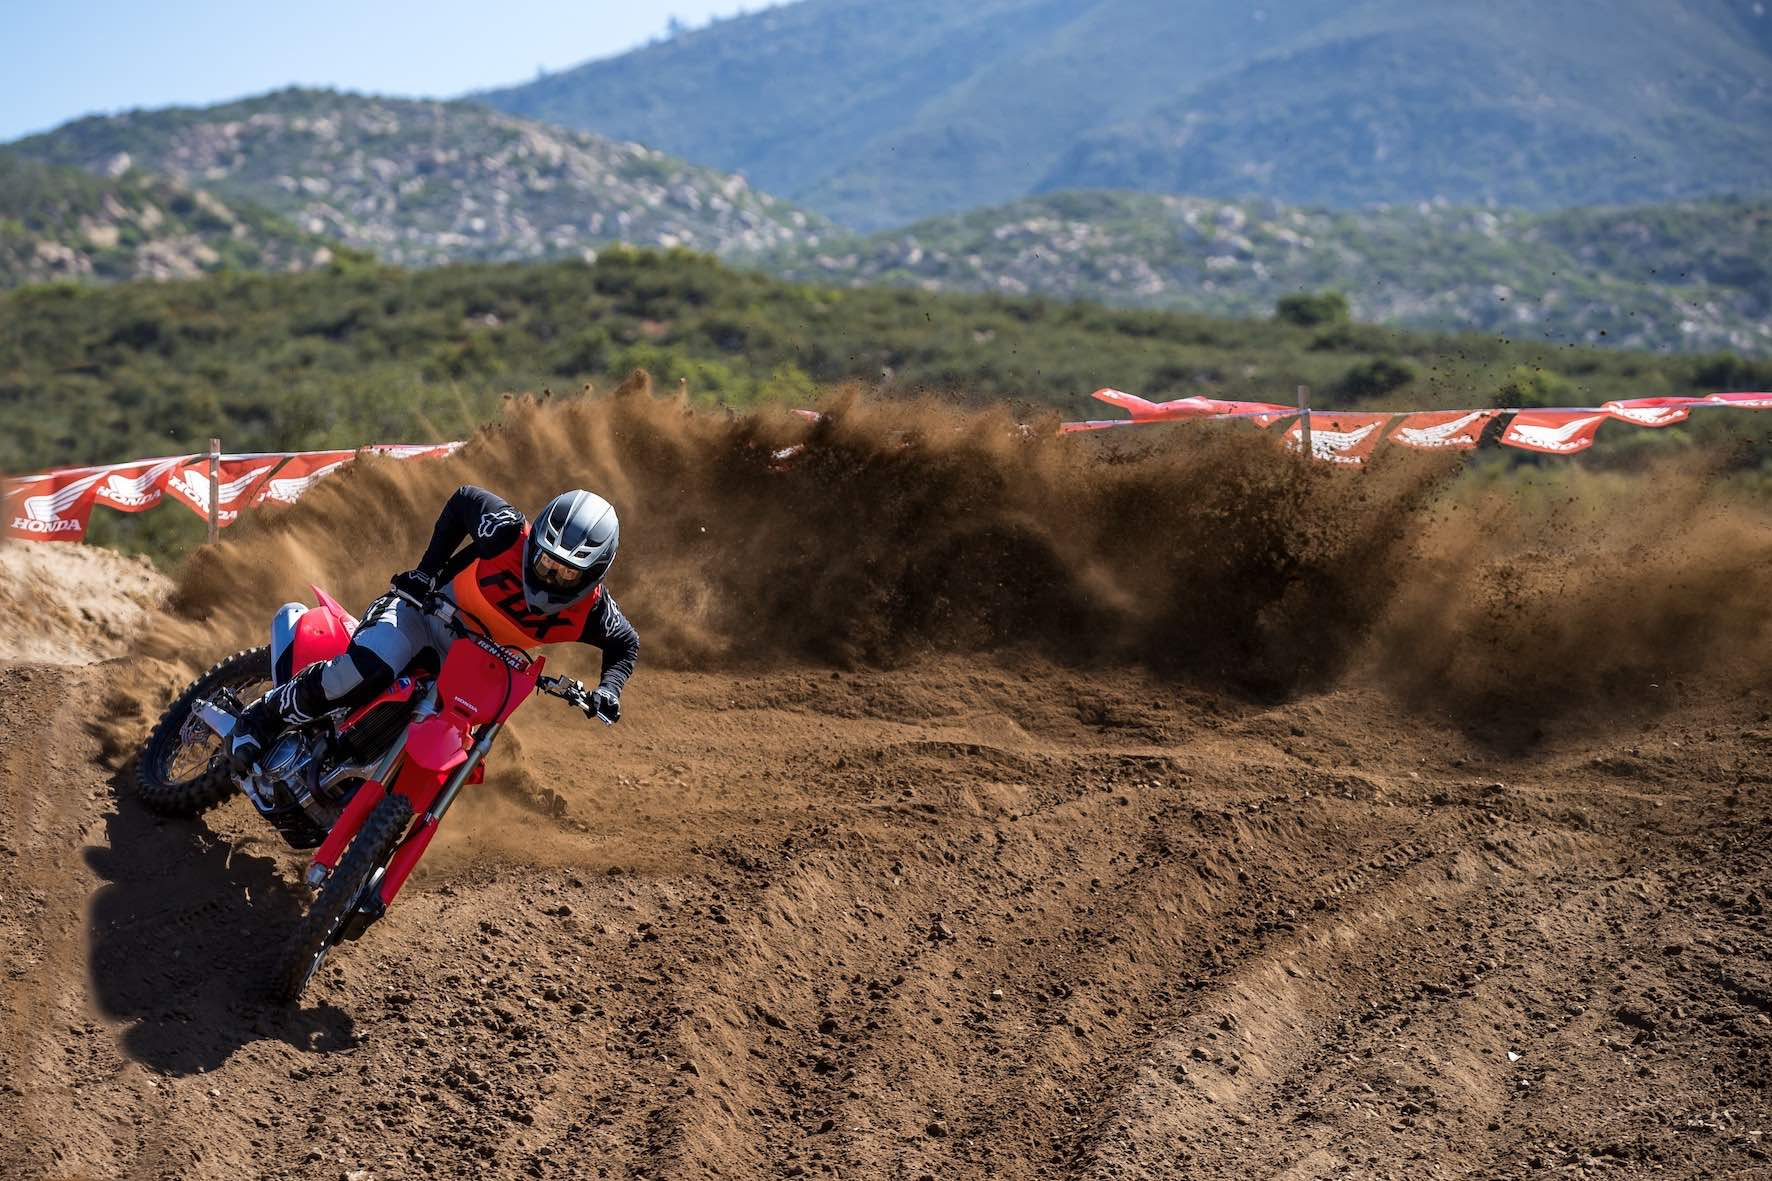 Cornering the 2021 Honda CRF450R